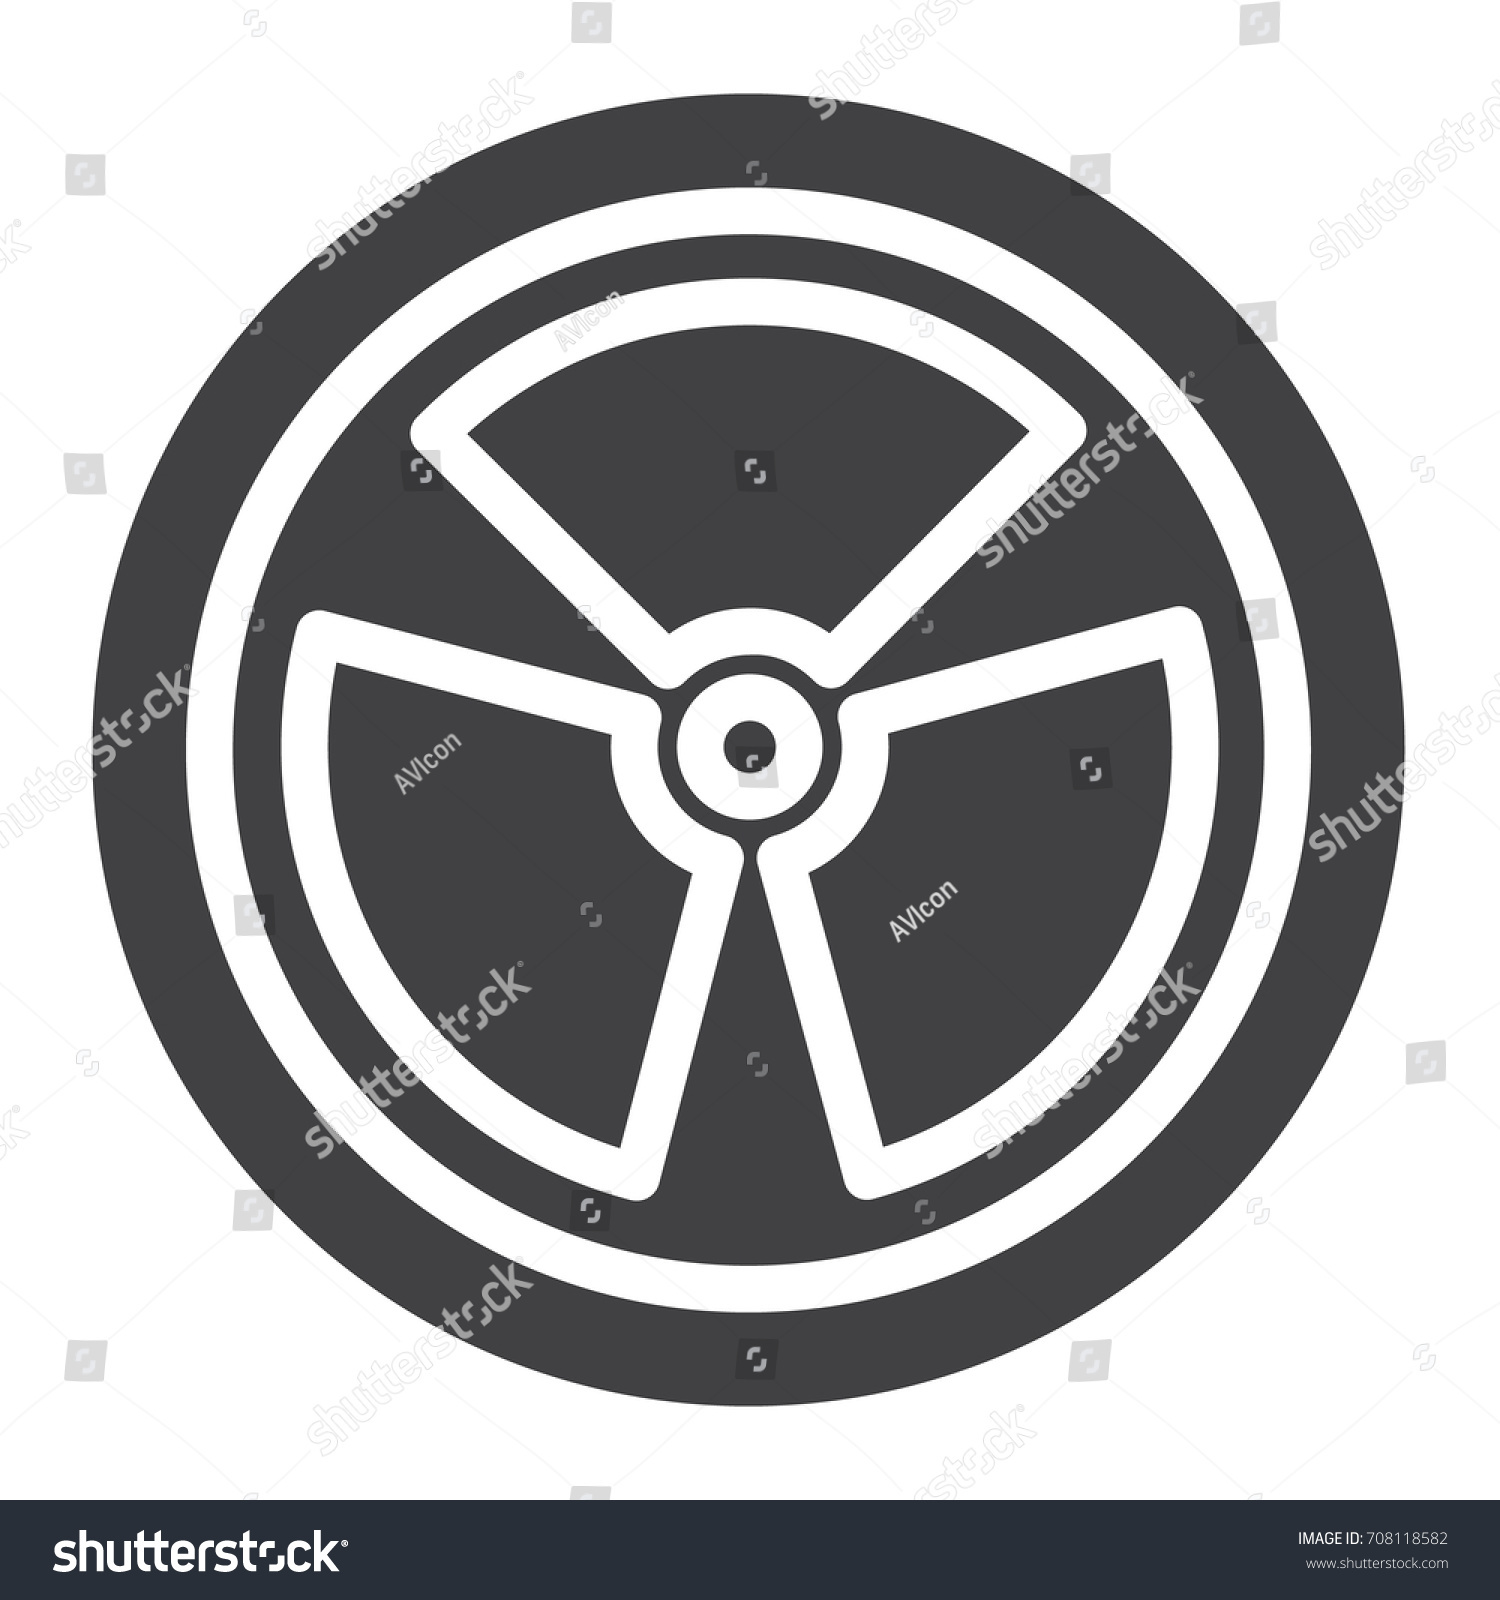 Nuclear power icon vector filled flat stock vector 708118582 nuclear power icon vector filled flat sign solid pictogram isolated on white symbol biocorpaavc Gallery